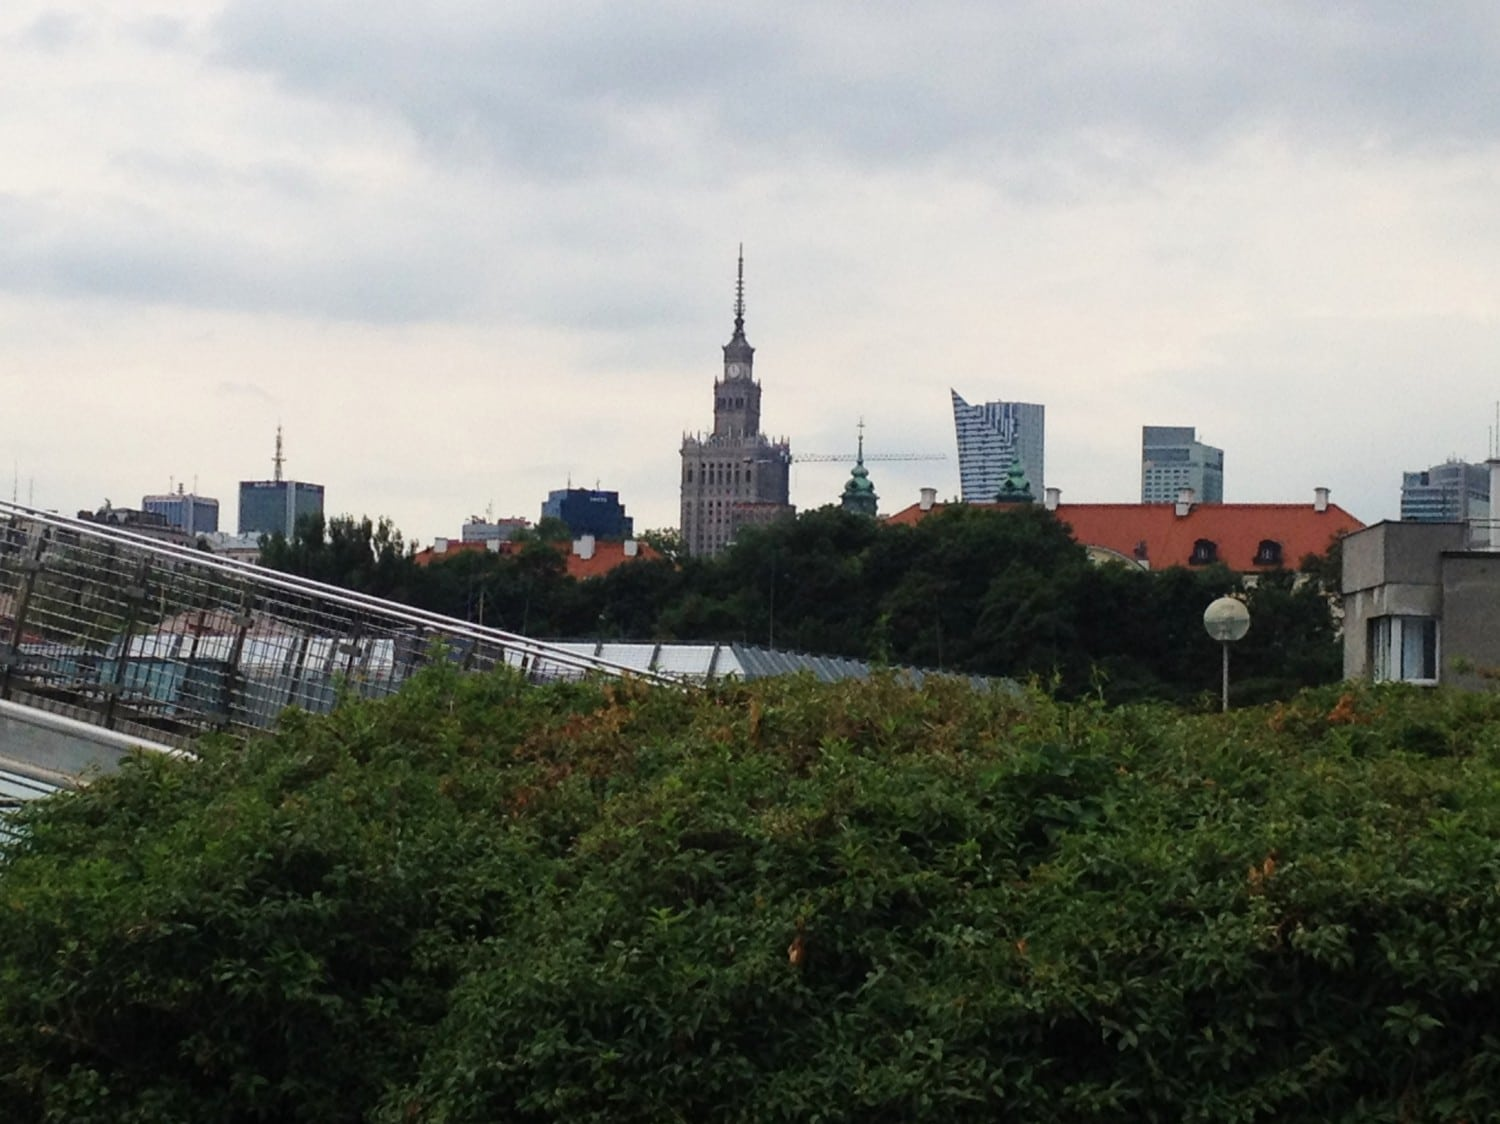 You can also see Plac Kultury i Nauki from the green roof - about a 30 minute walk from the library.